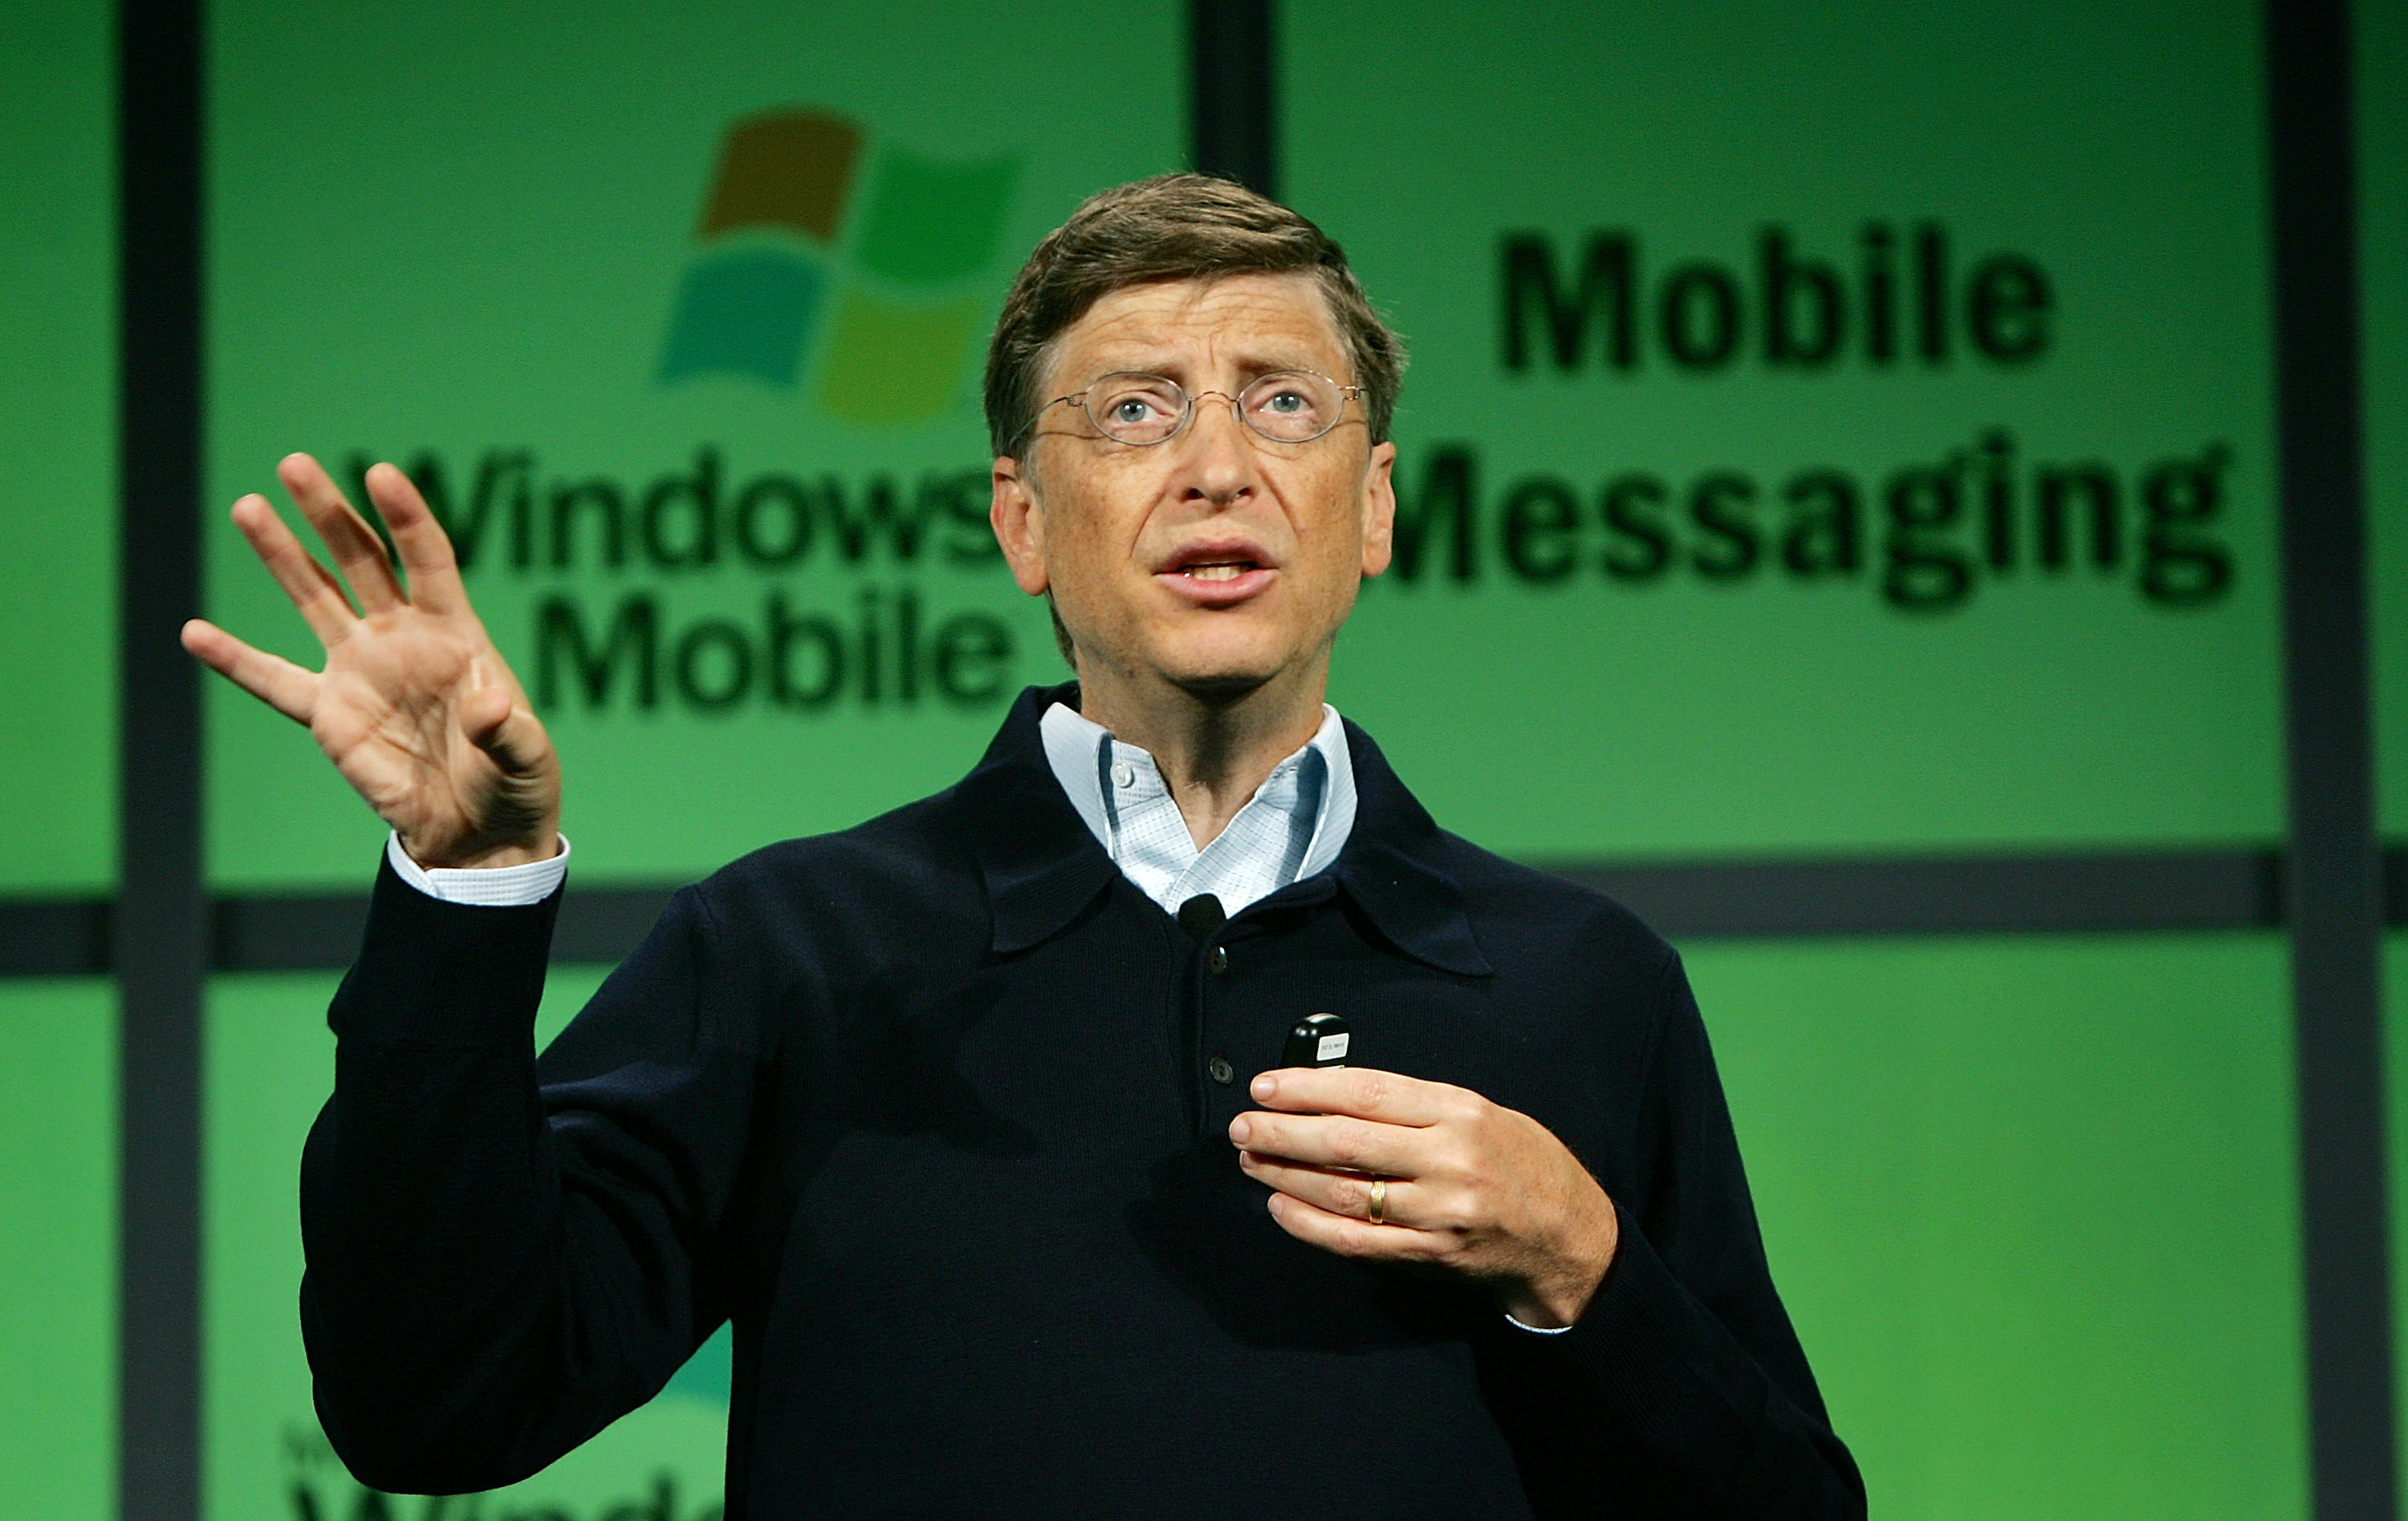 Bill Gates Introduces Microsofts Mobile 5.0 Software